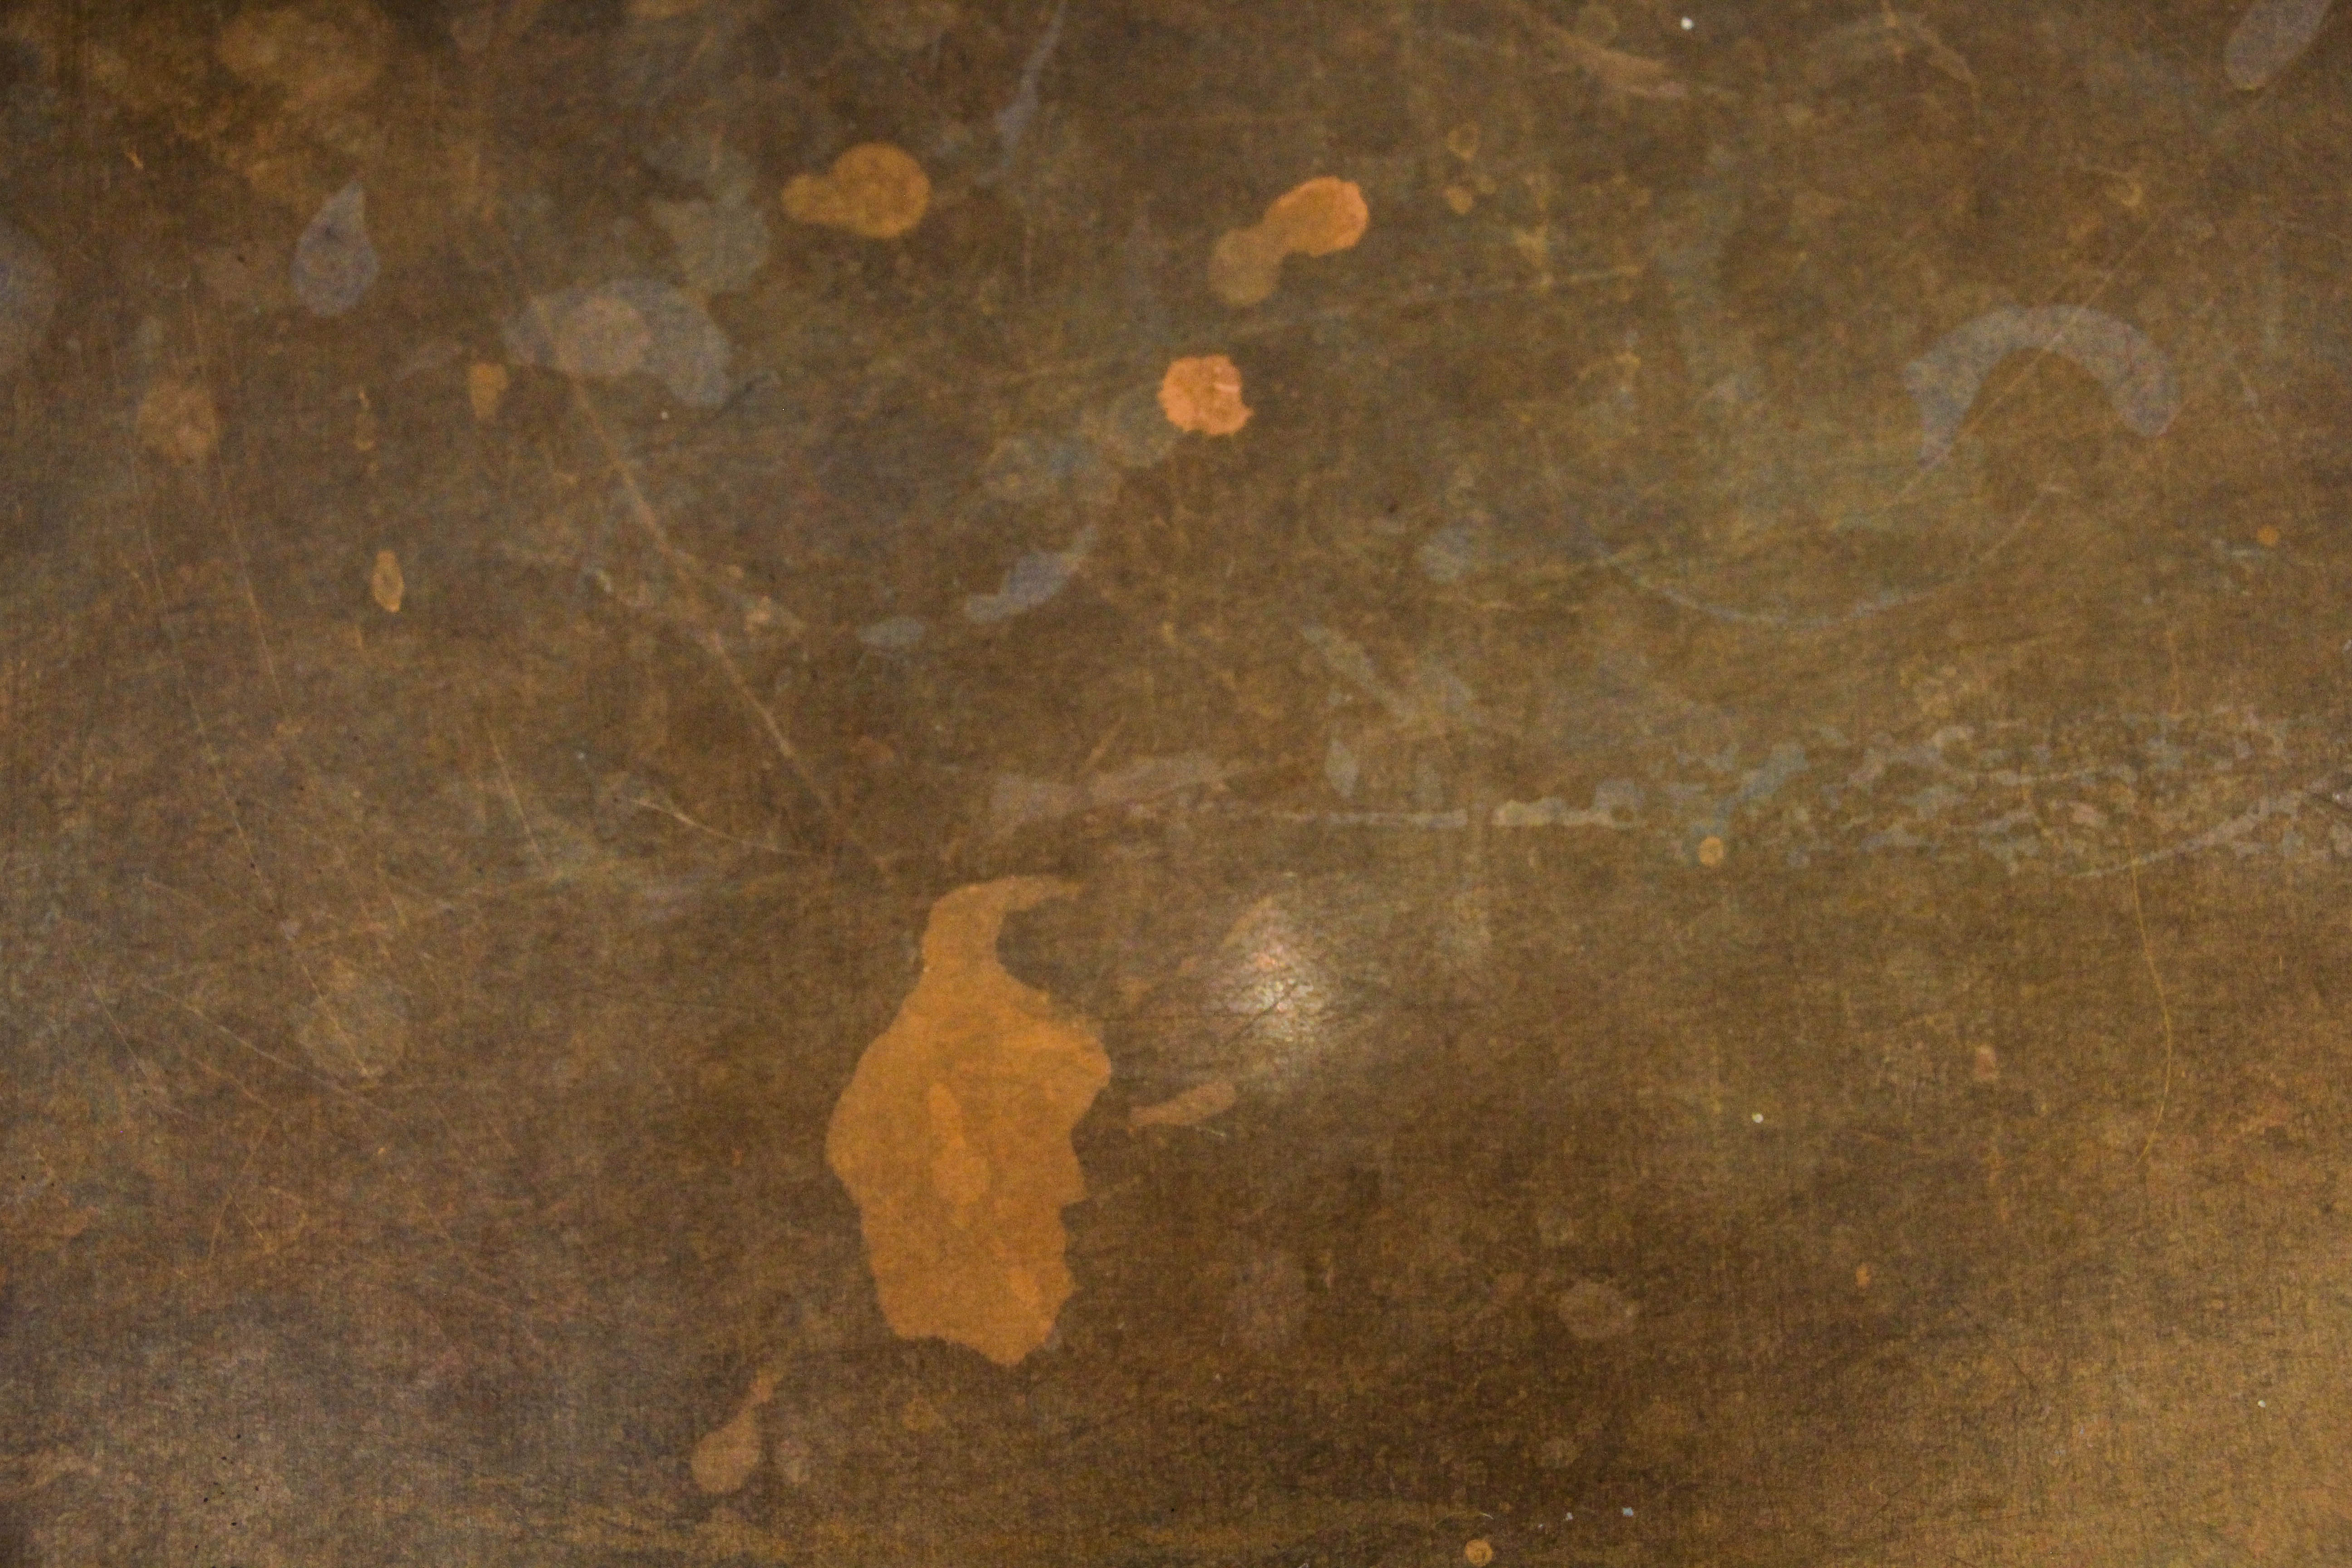 stained concrete floor texture. Beautiful Floor Grunge Texture Spotted Orange Stained Concrete Floor Wallpaper  TextureX  Free And Premium Textures High Resolution Graphics Intended Stained Concrete Floor Texture U